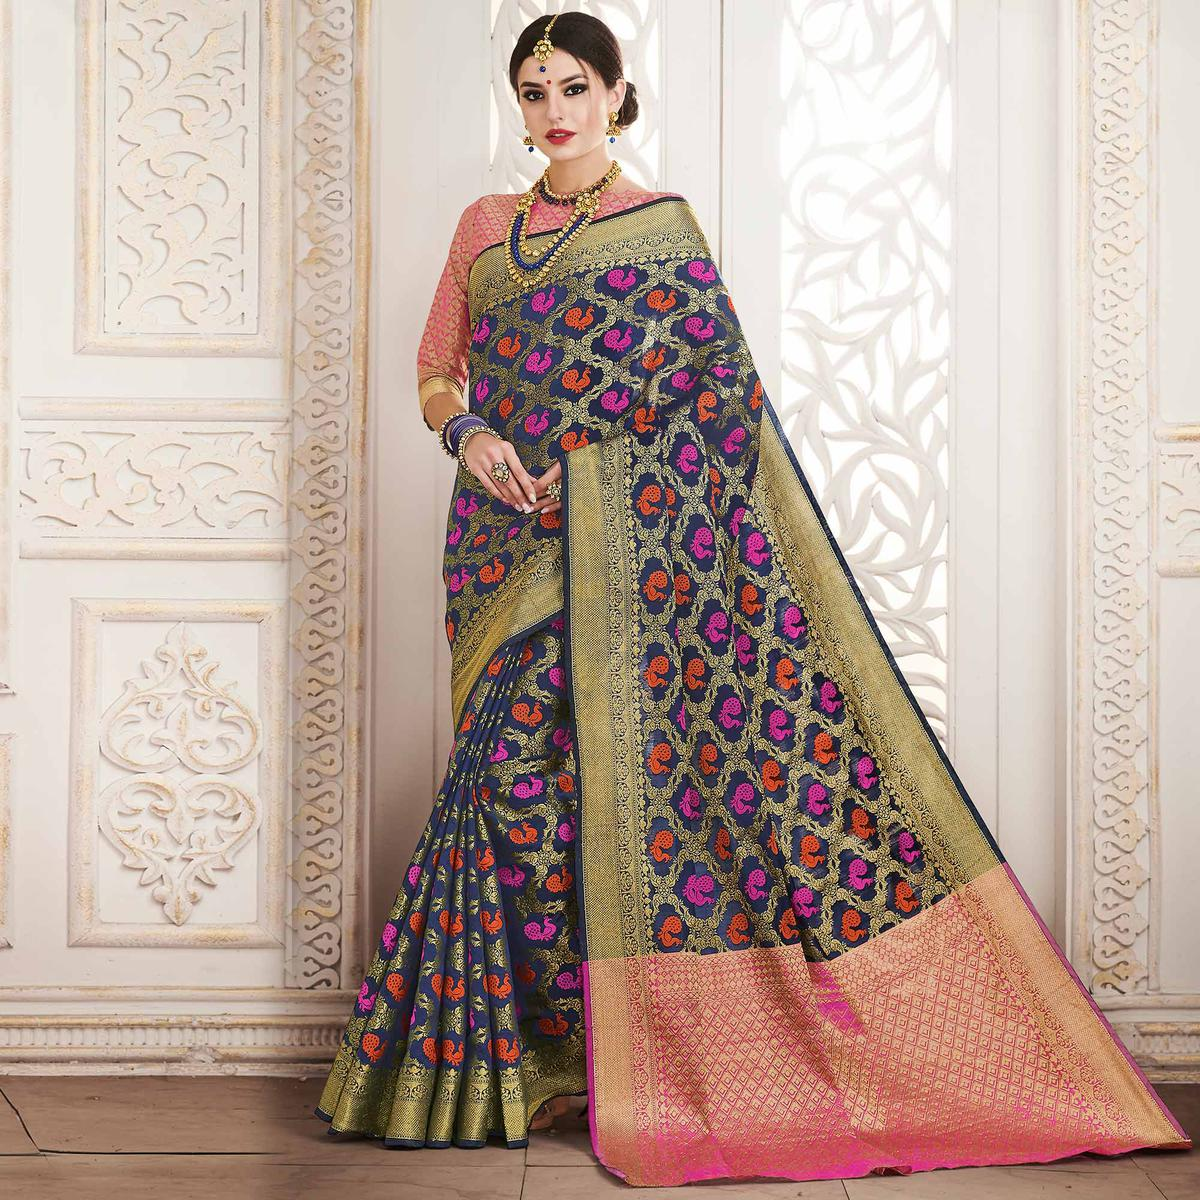 Adorning Navy Blue Colored Festive Wear Patola Silk Saree